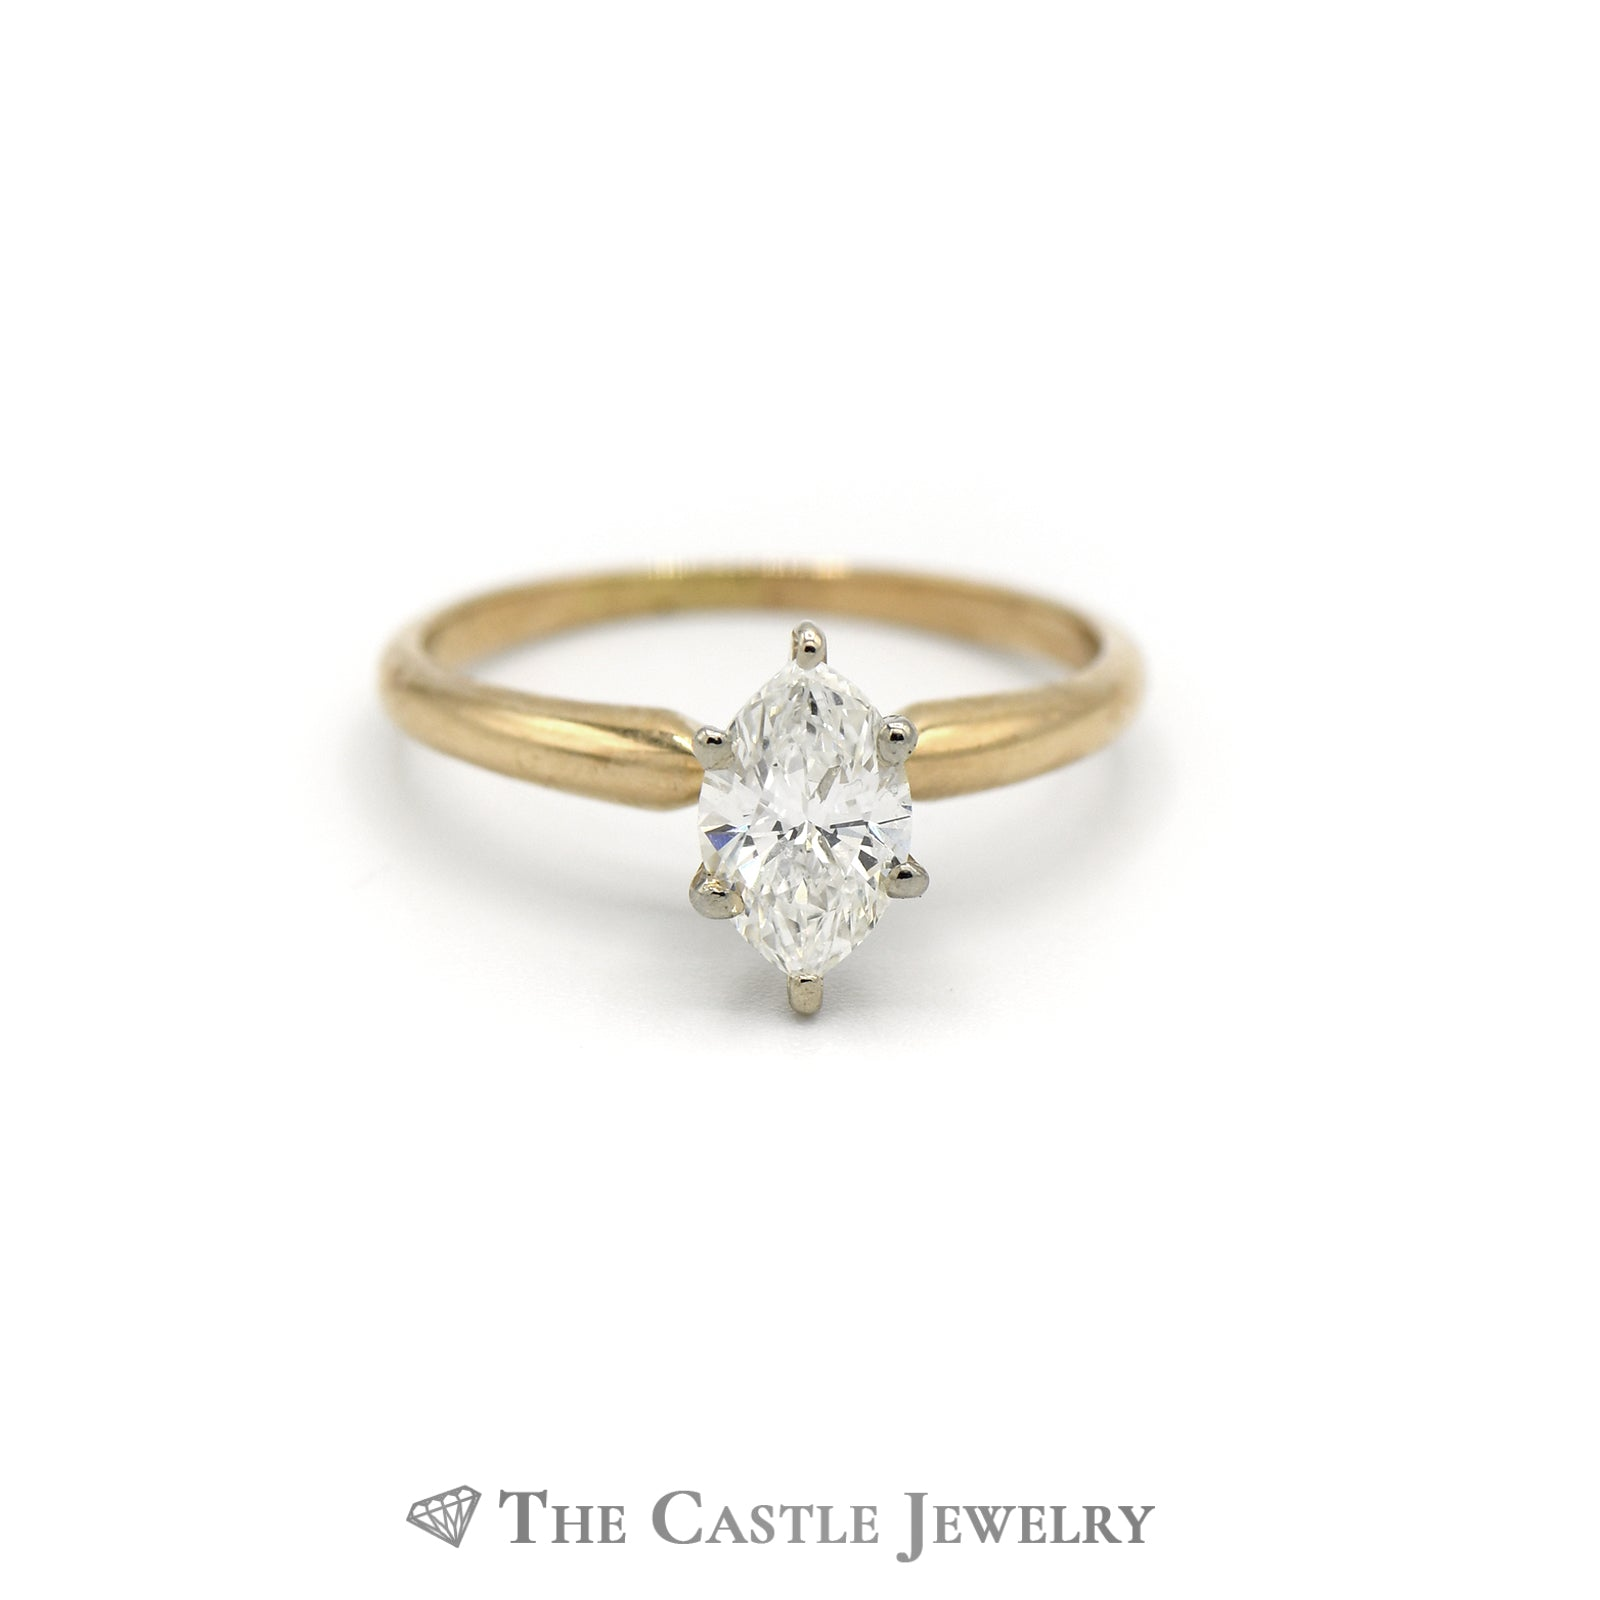 .65ct Marquise Diamond Solitaire Ring in 14KT Yellow Gold